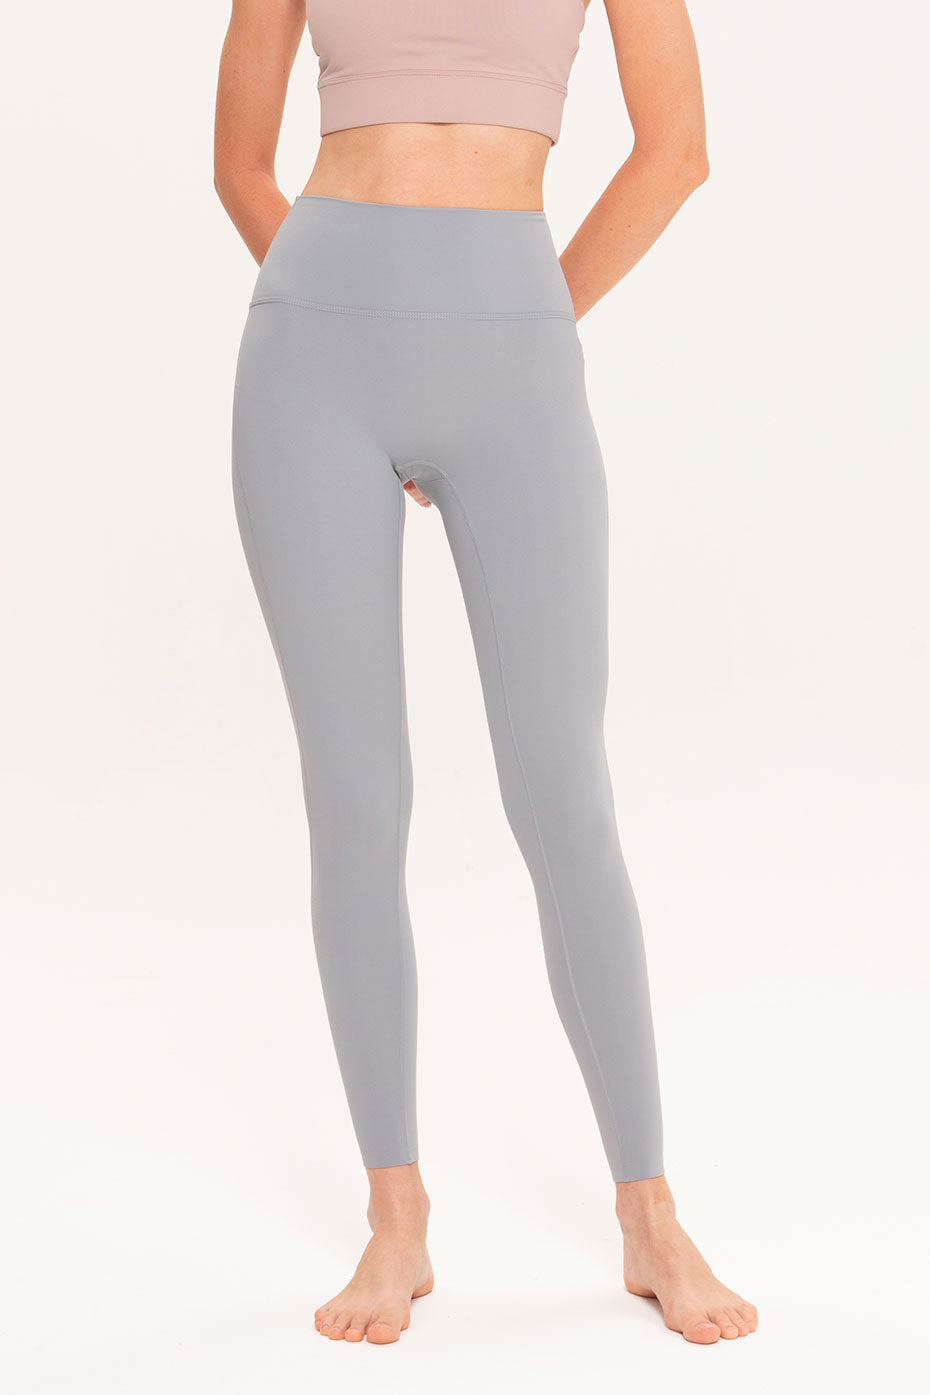 7/8 High-Wasit Allev Legging